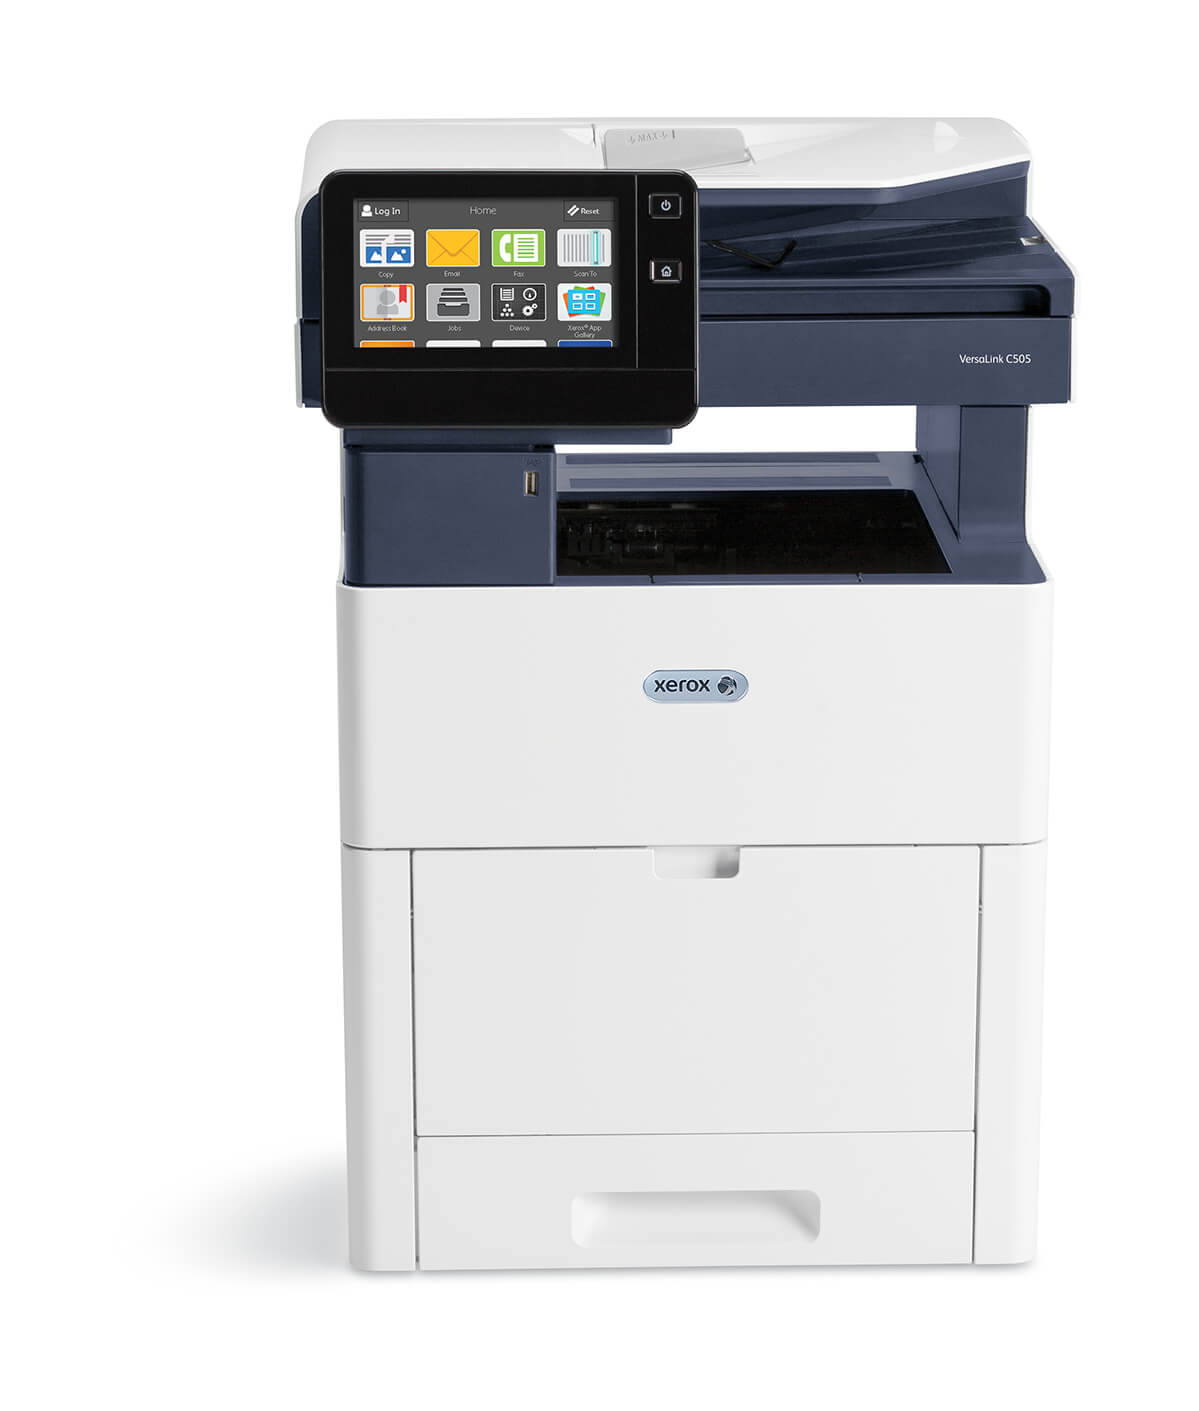 Designed for fast-paced work teams, the VersaLink C505 Color Multifunction Printer delivers a higher level of reliable performance. Cloud connected, mobile ready, app-enabled, and easy to customize, the C505 is your modern workplace assistants— helping you excel today and stay ready for the future.